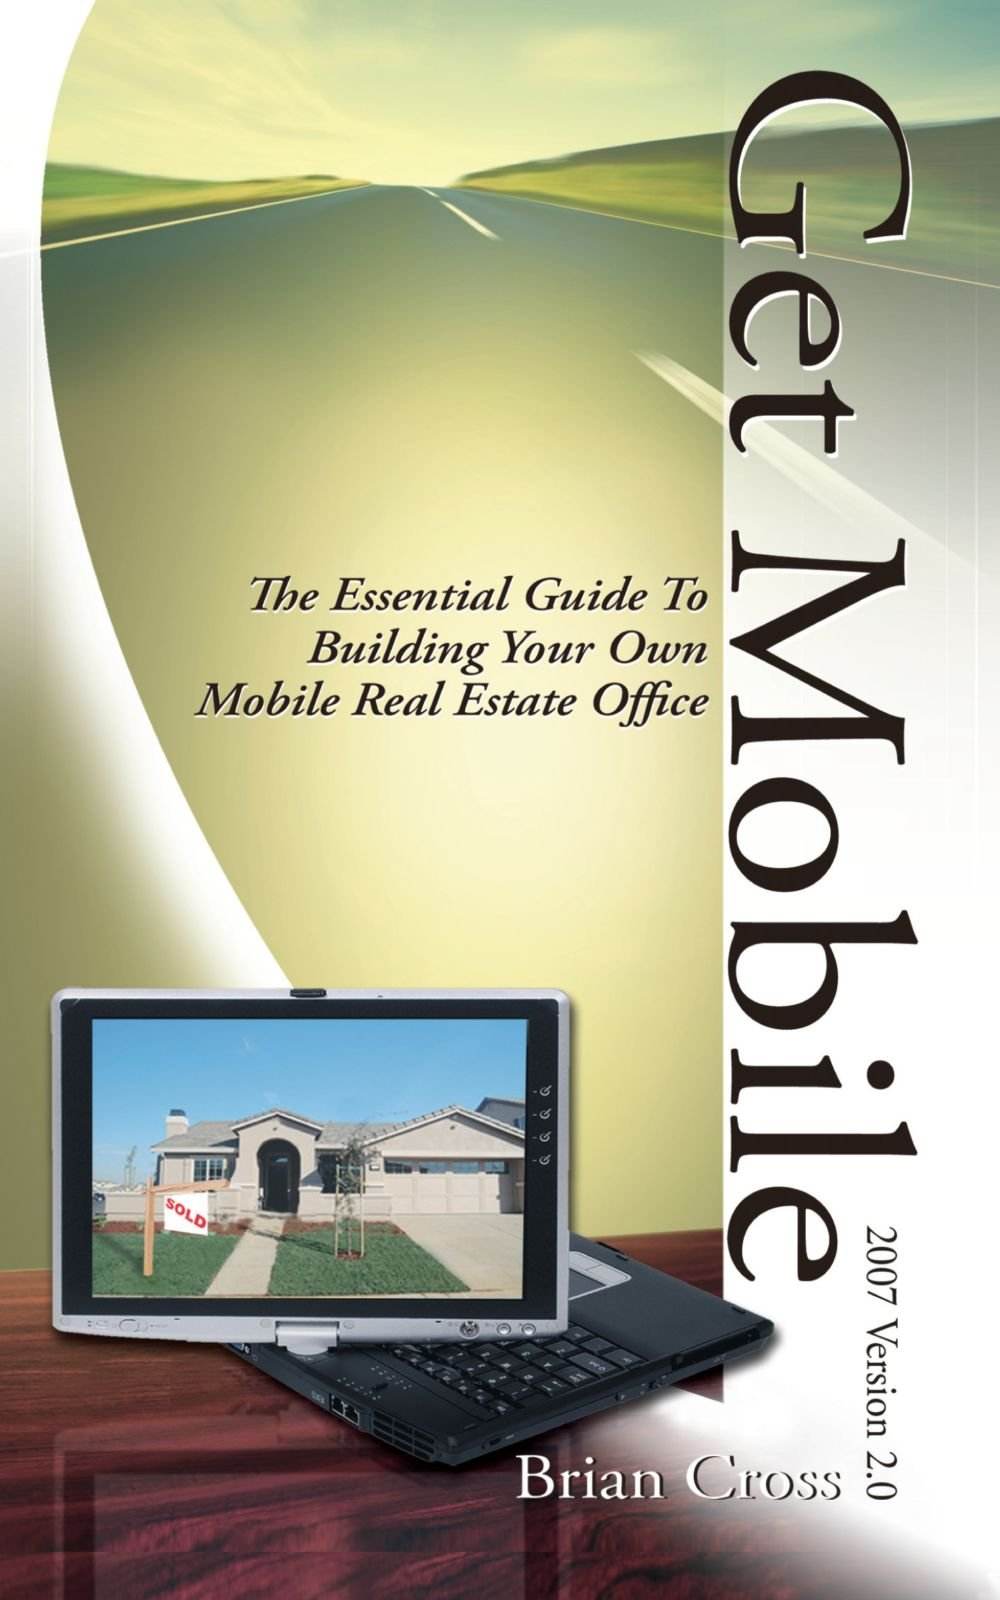 Get Mobile: The Essential Guide To Building Your Own Mobile Real Estate Office